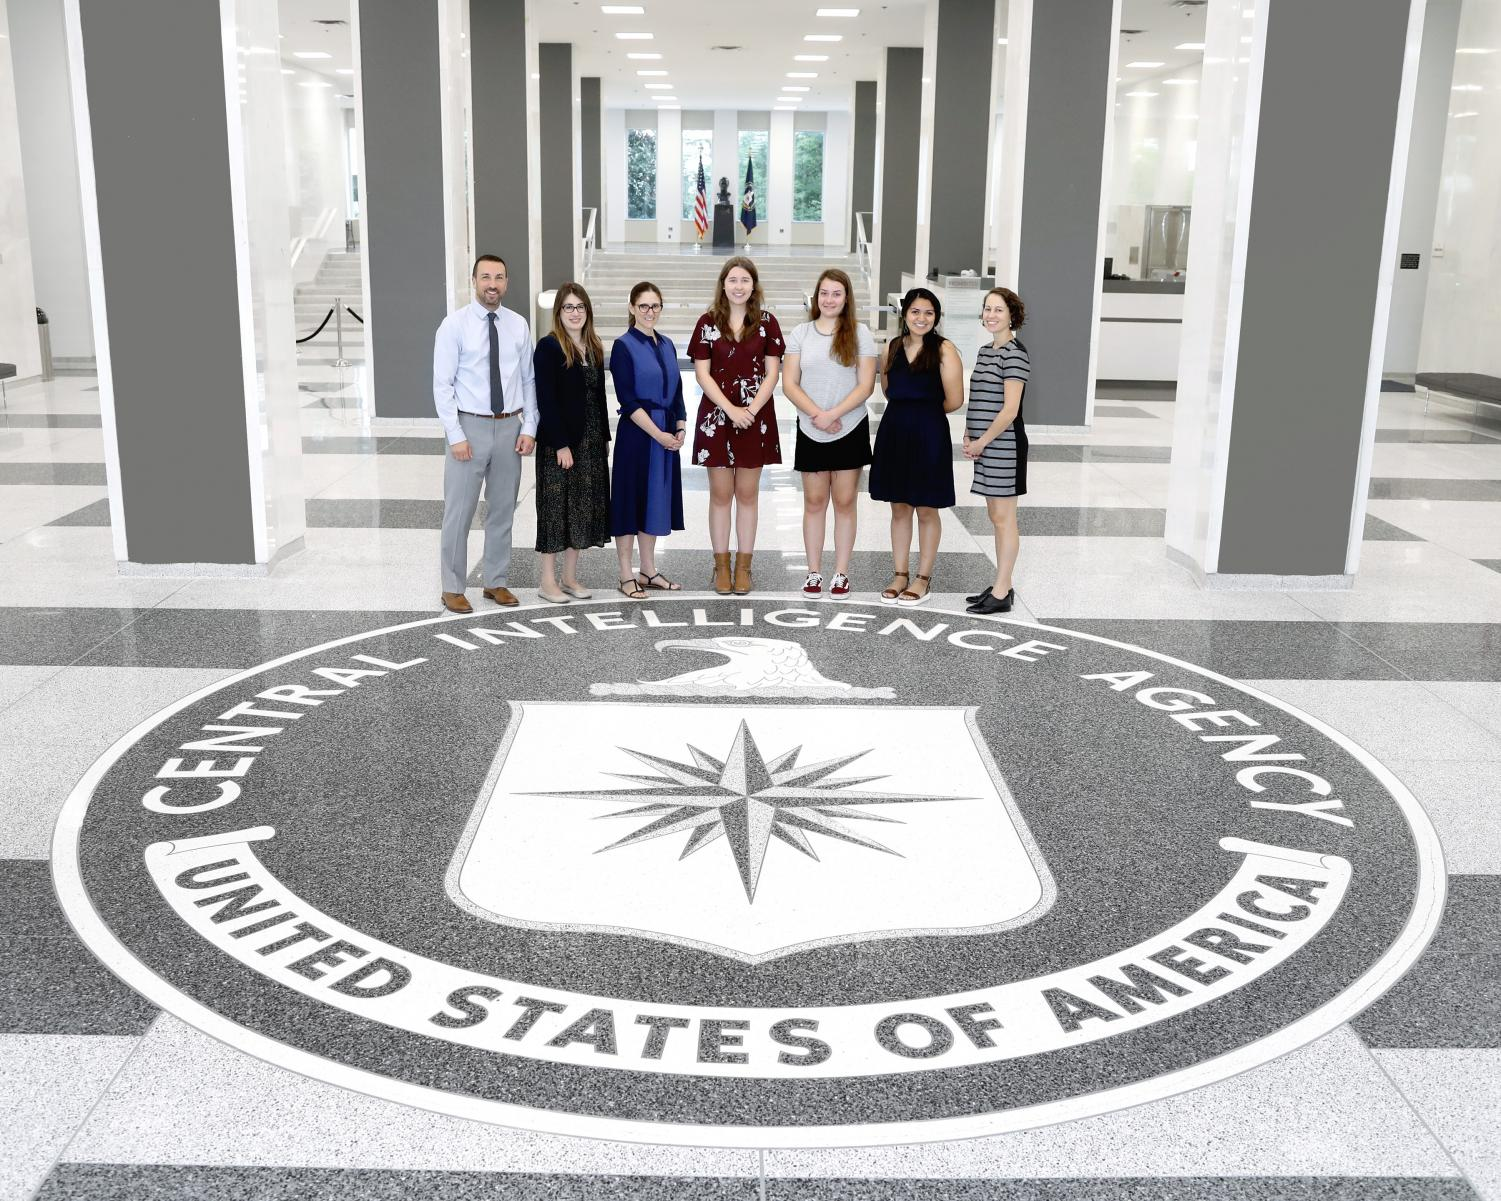 Journalism teacher Mitch Schwartz, Ali Rogan of PBS NewsHour, Leah Clapman of PBS NewsHour, Morgan Fischer, Alison Pataky, Karen Ramos and Briget Gansky of PBS NewsHour stand in the entrance of the Old Headquarters Building of the CIA prior to the ceremony.